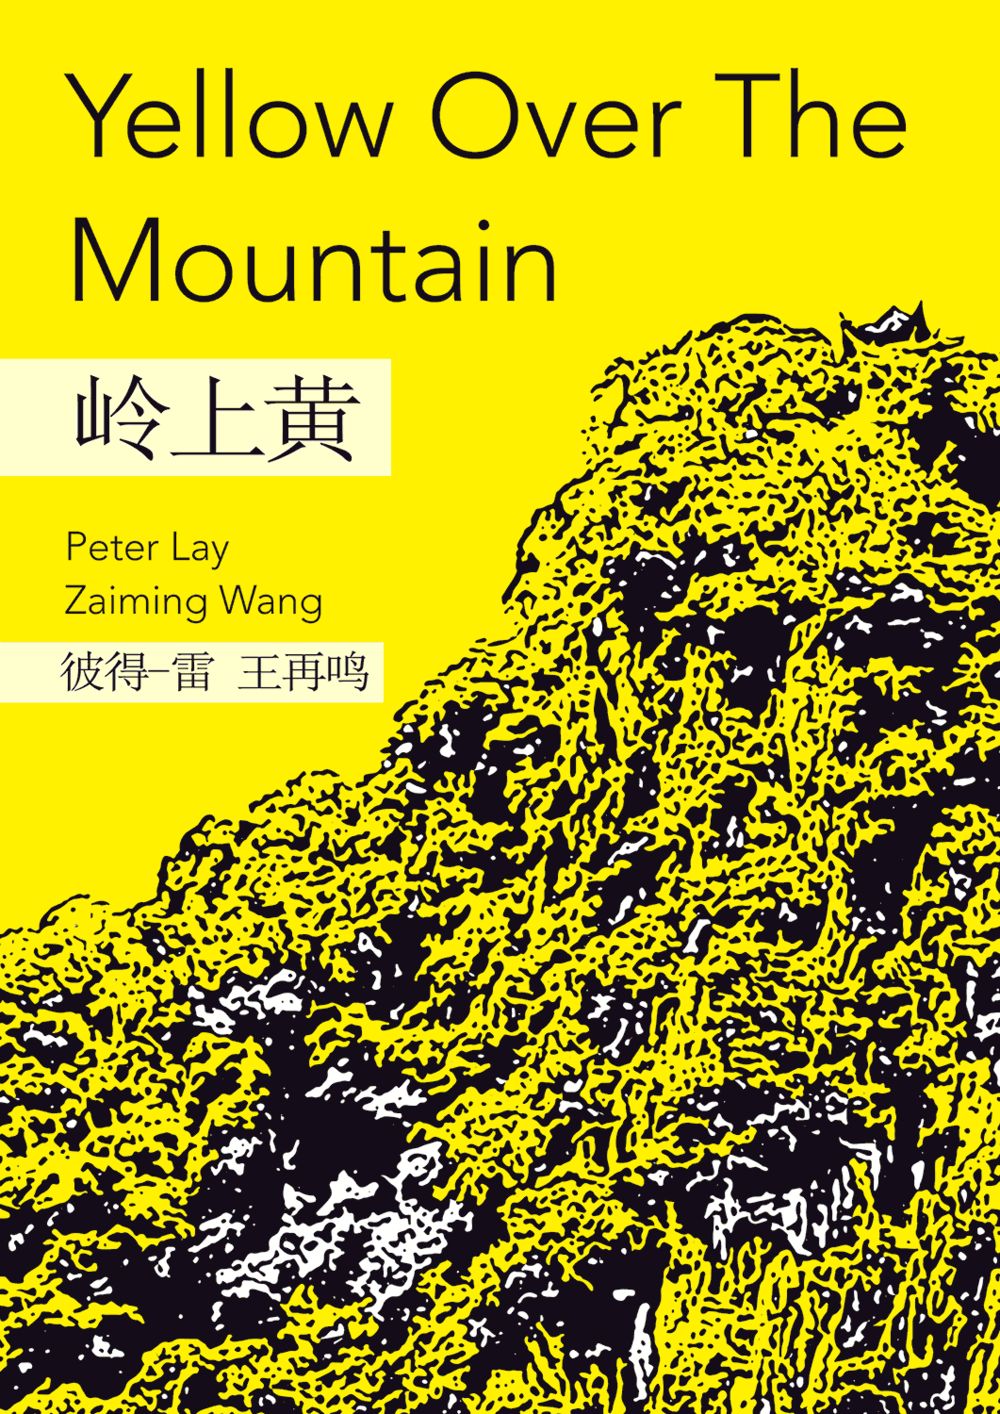 Book cover design for Yellow Over The Mountain Gloucestershire